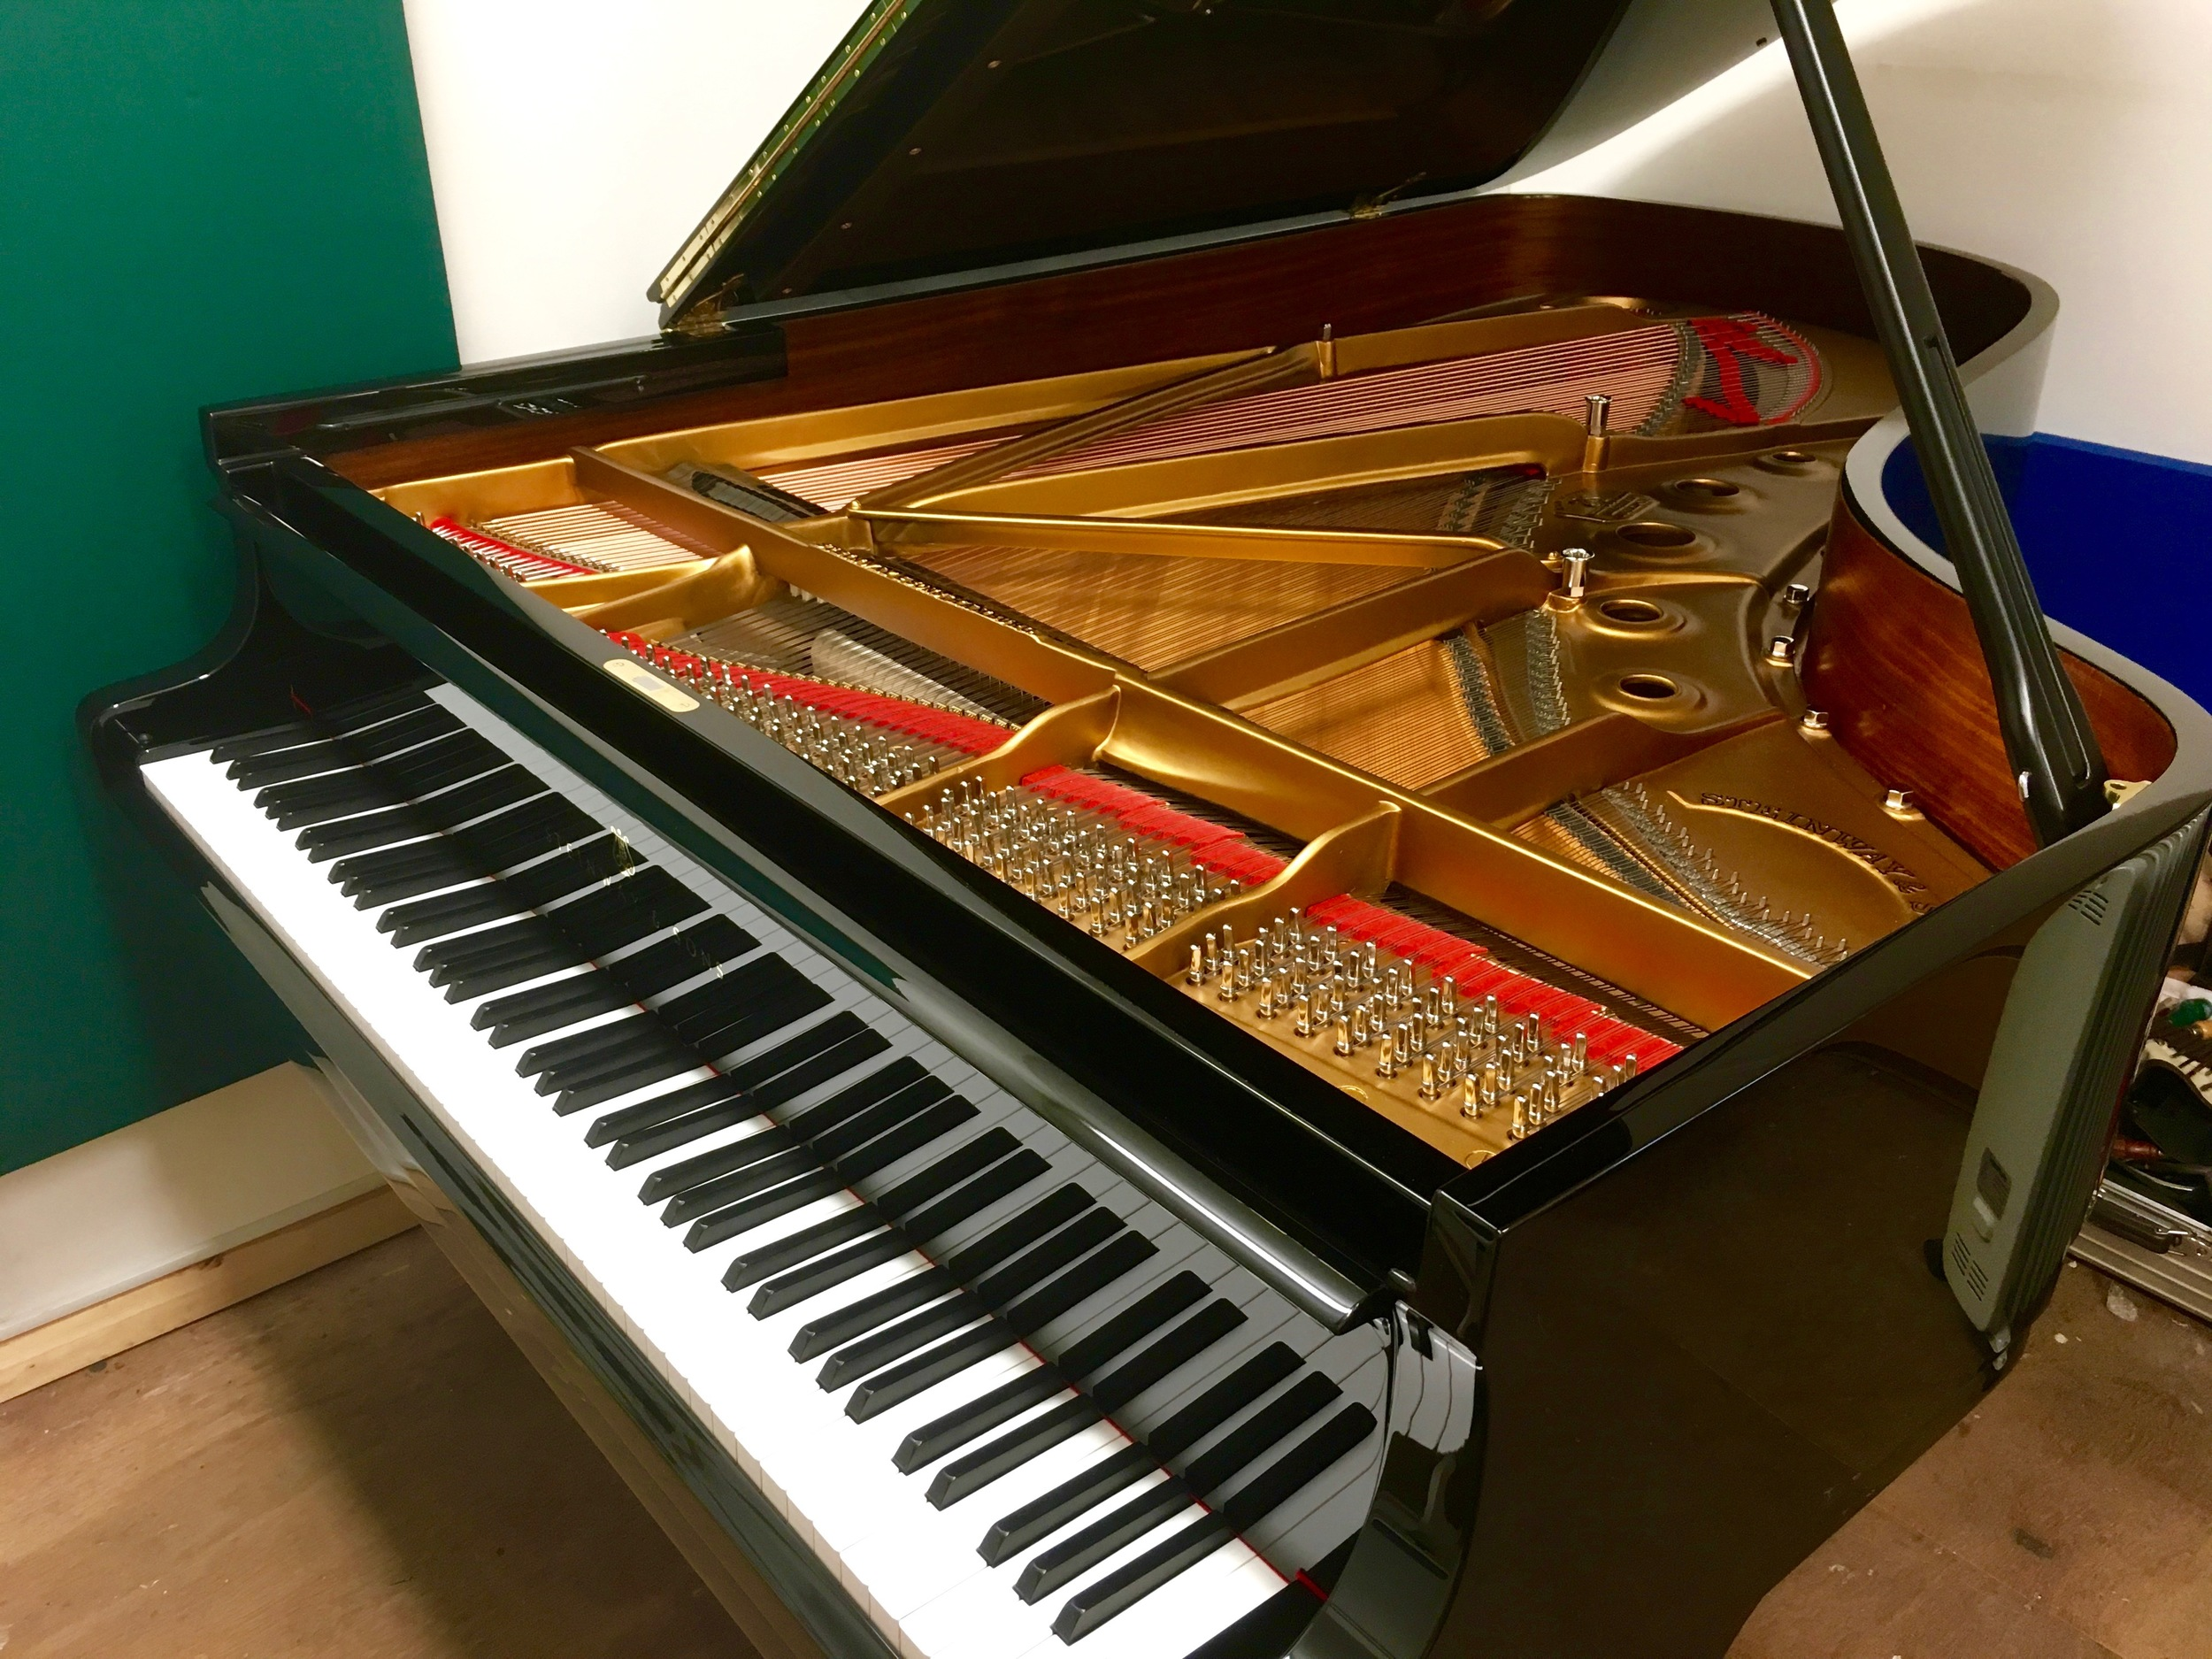 The completed piano